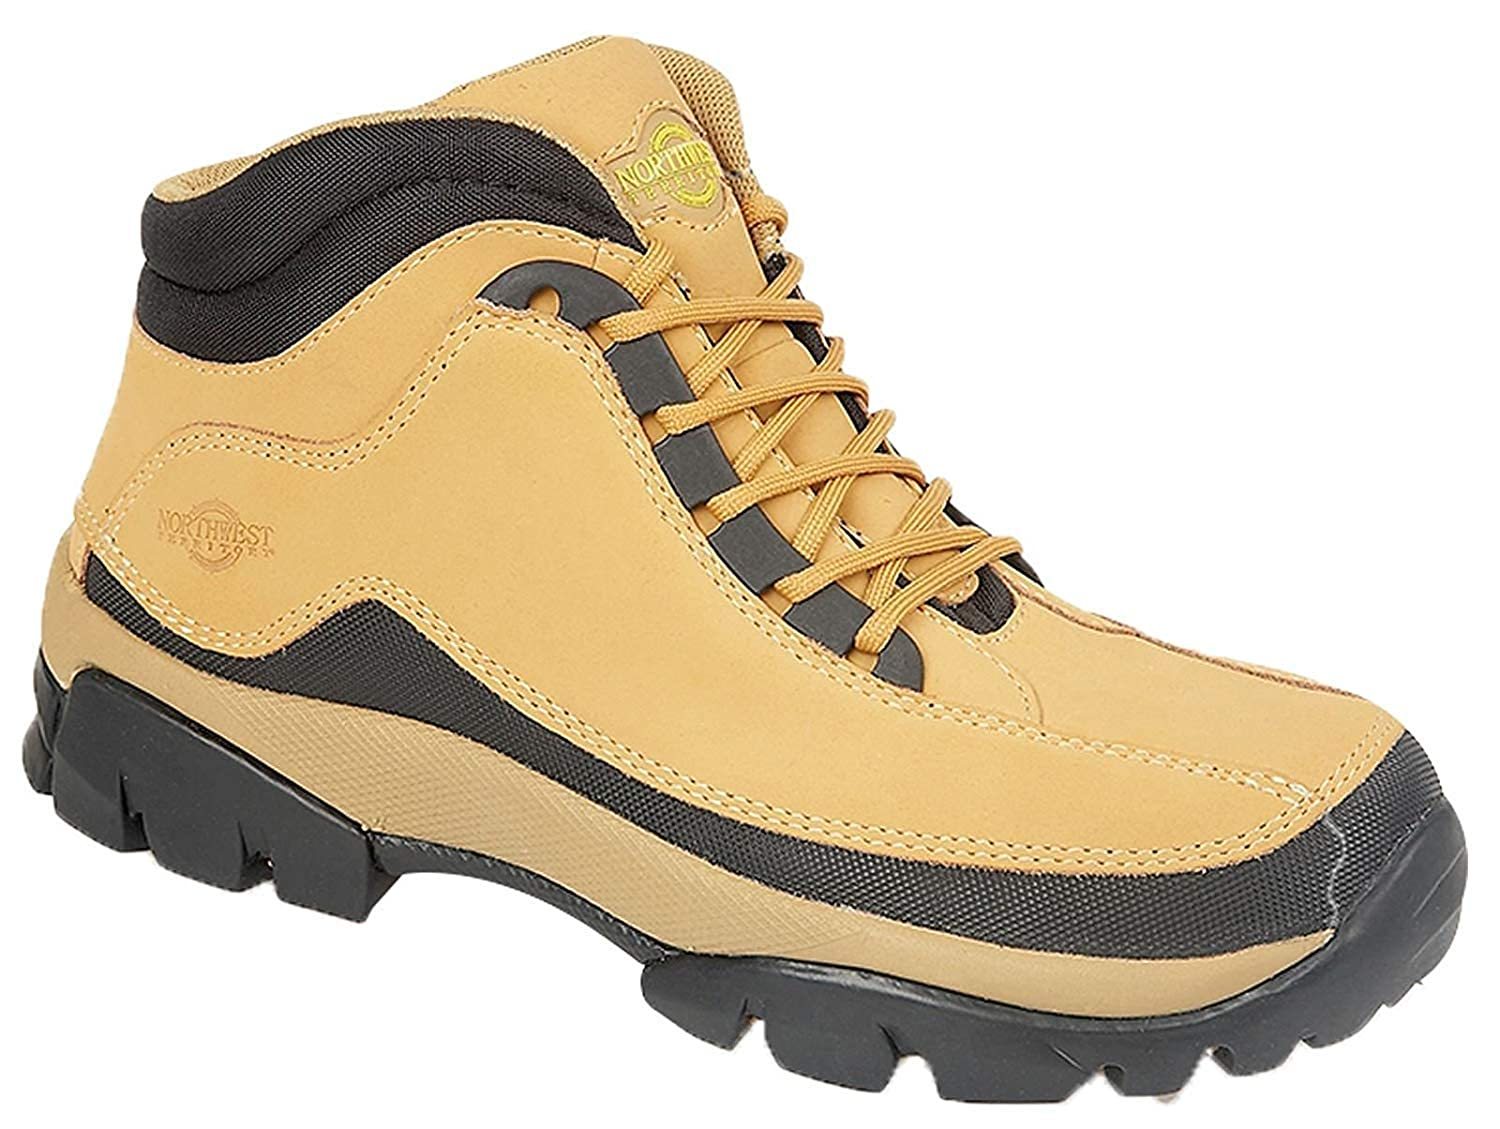 Northwest Territory Mens Nubuck Leather Lace Up Safety Boots